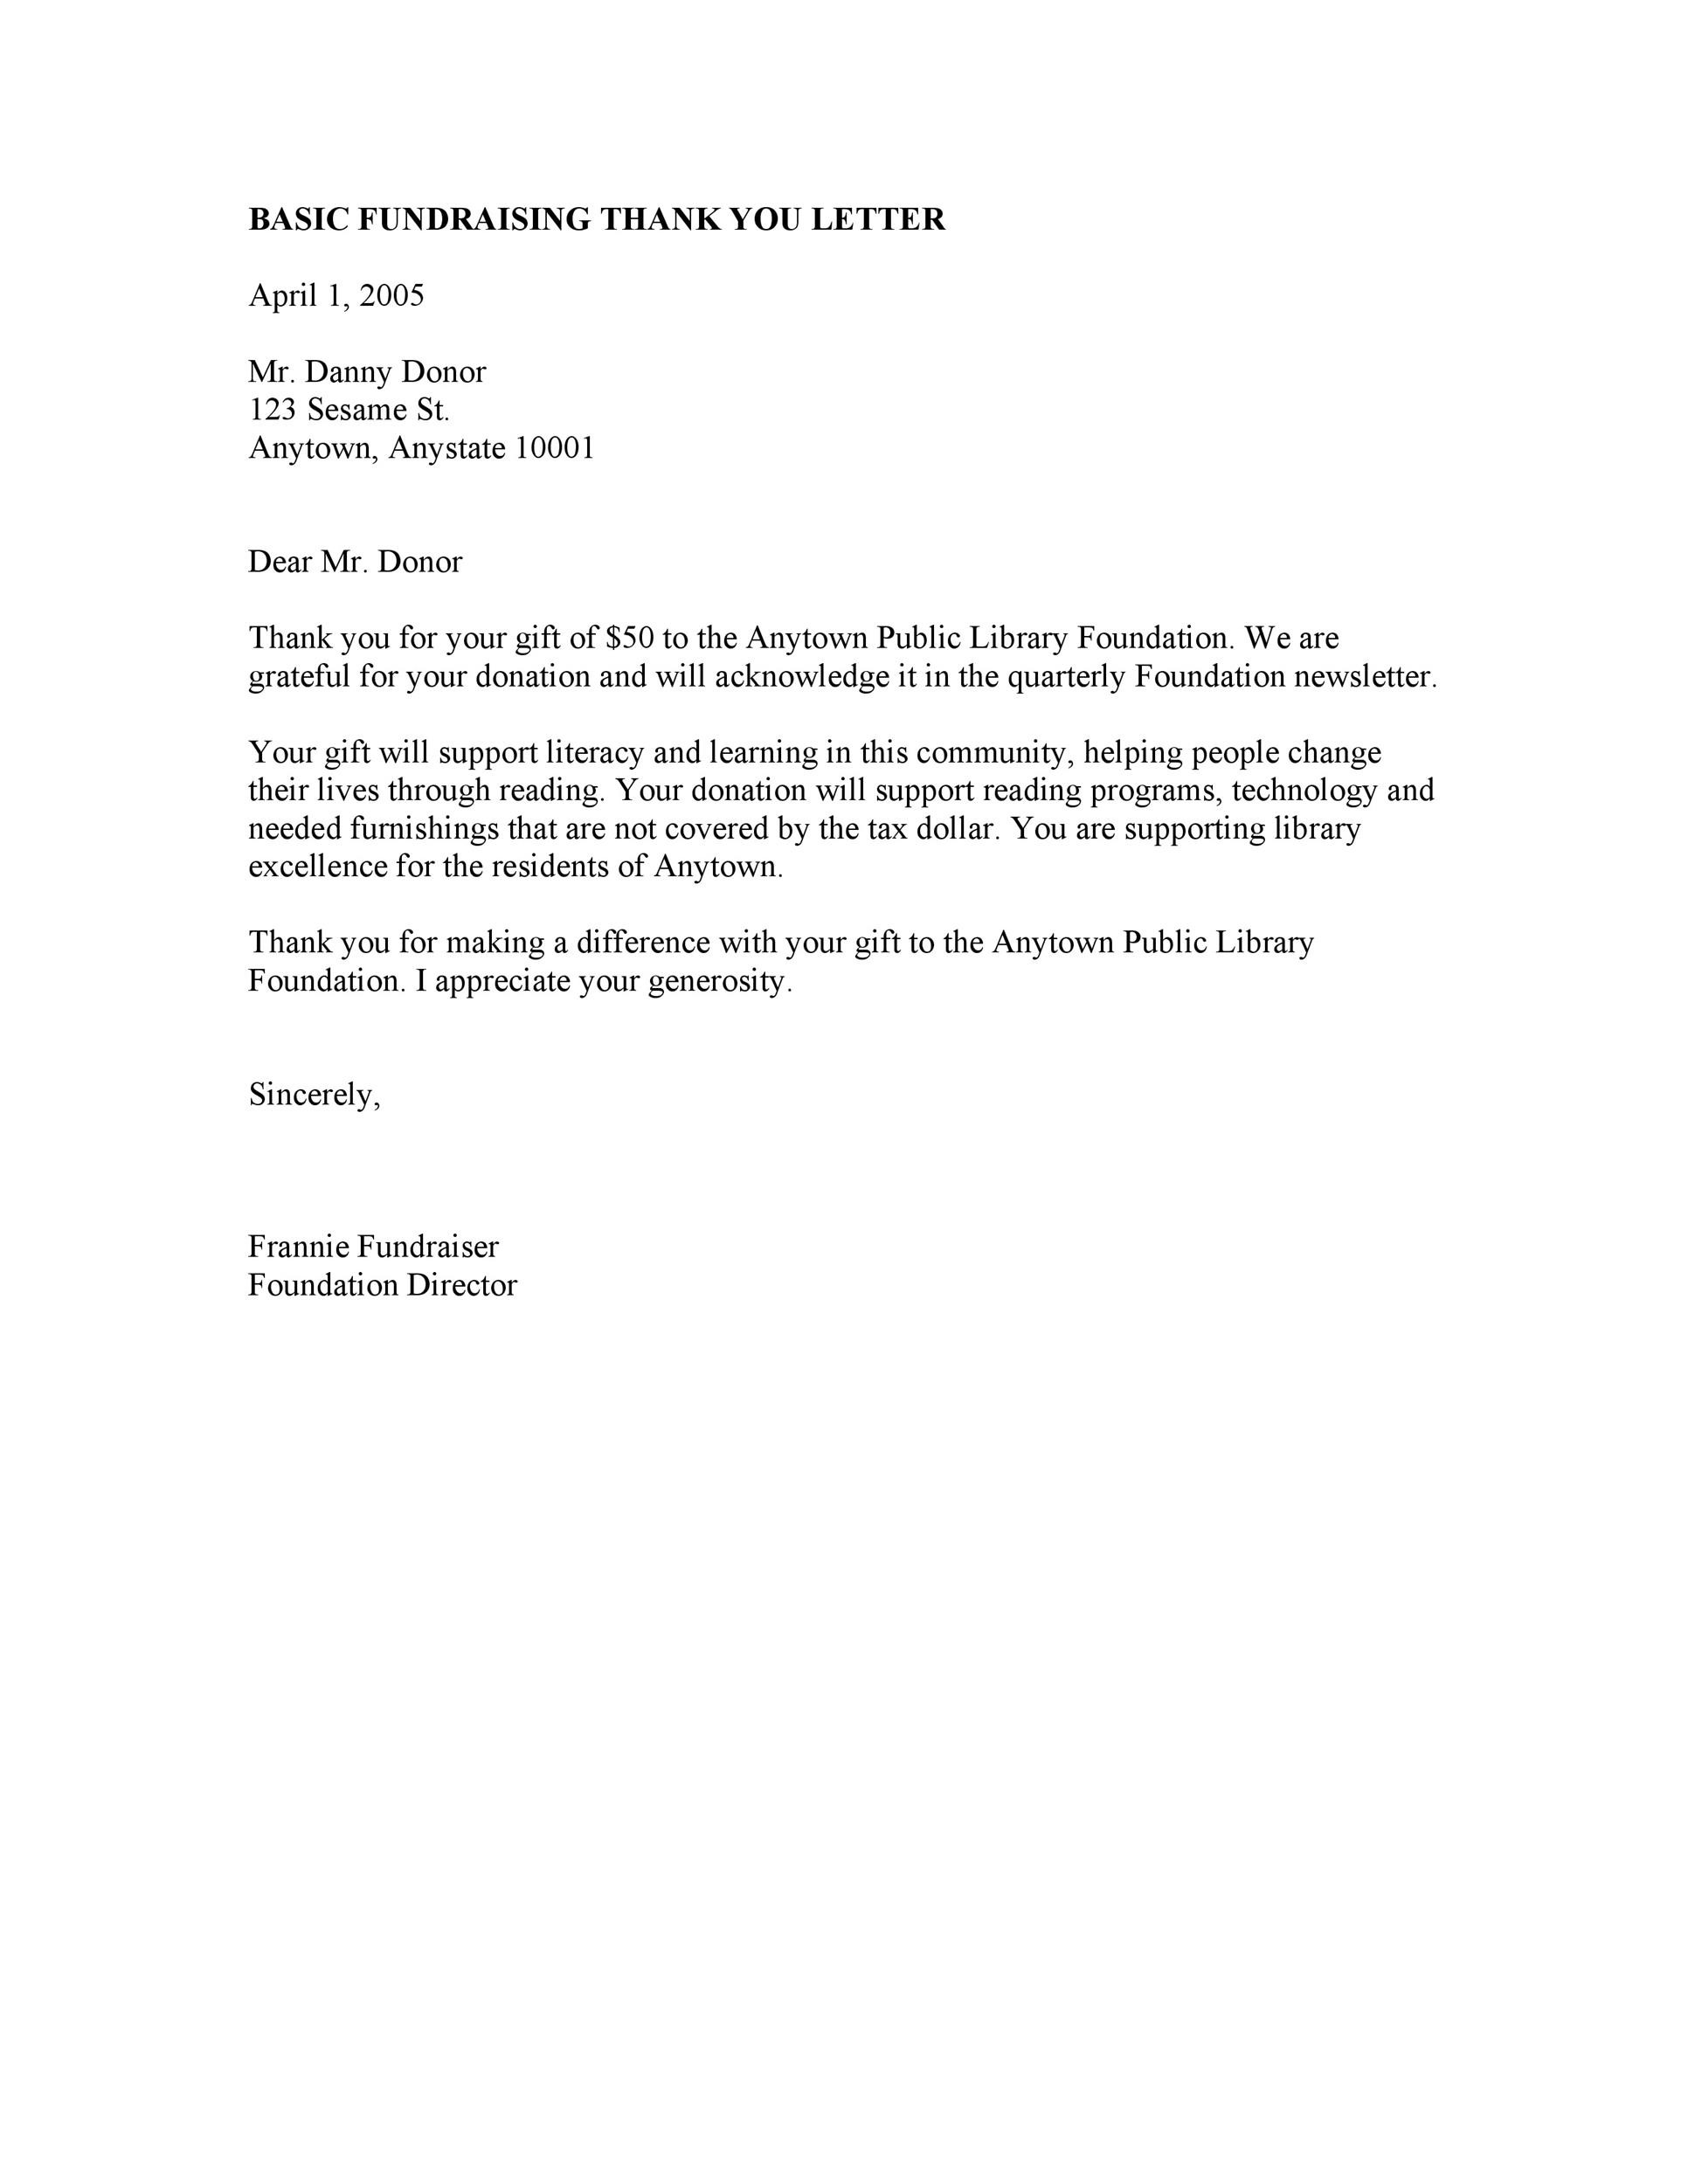 Thank You Letter For Scholarship | Thank You Letter Template Donation Template Office Procedure